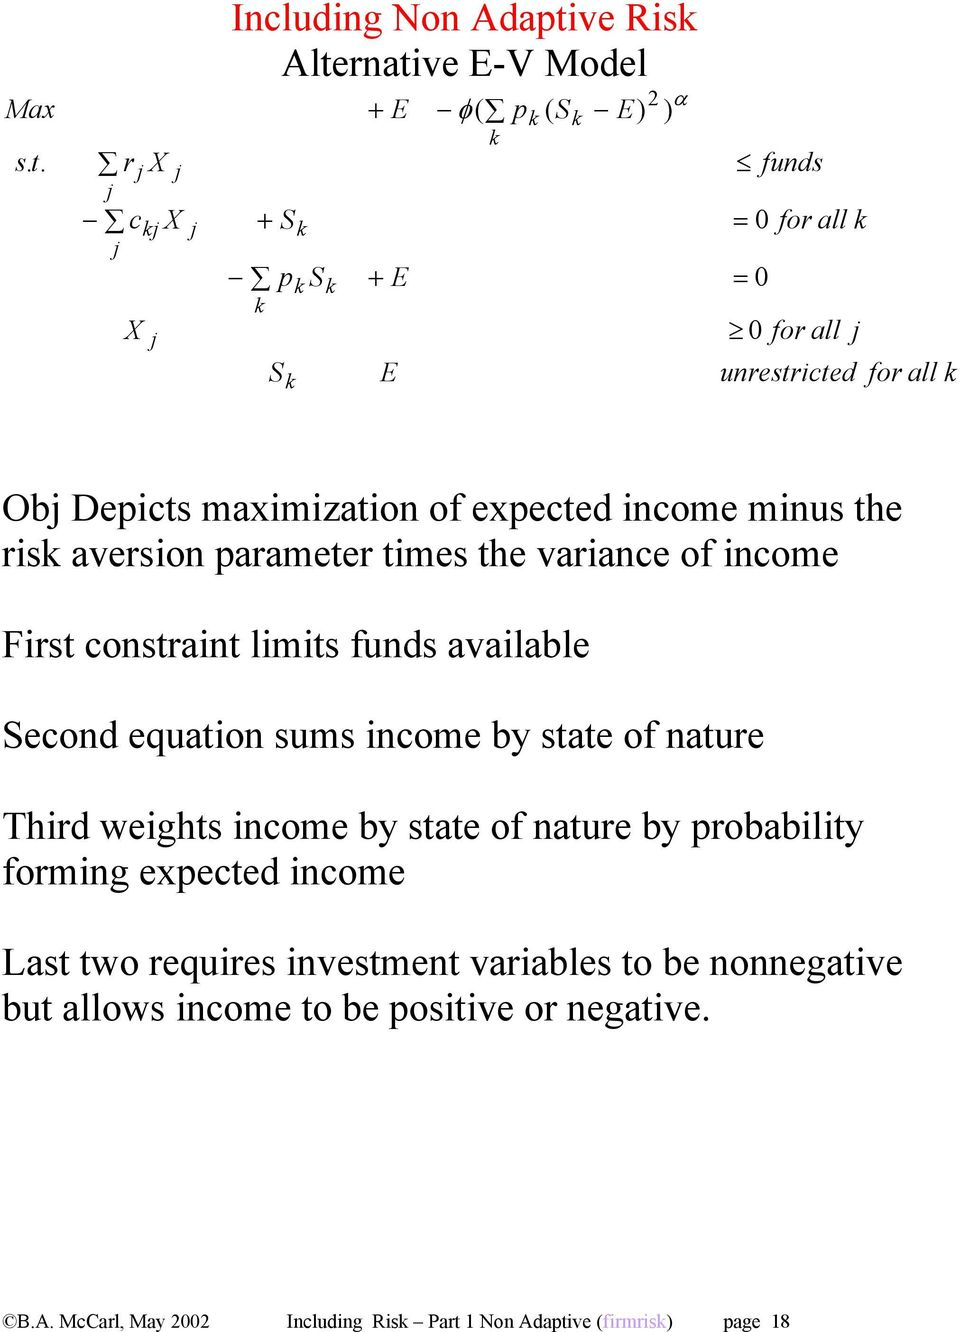 maximization of expected income minus the ris aversion parameter times the variance of income First constraint limits funds available Second